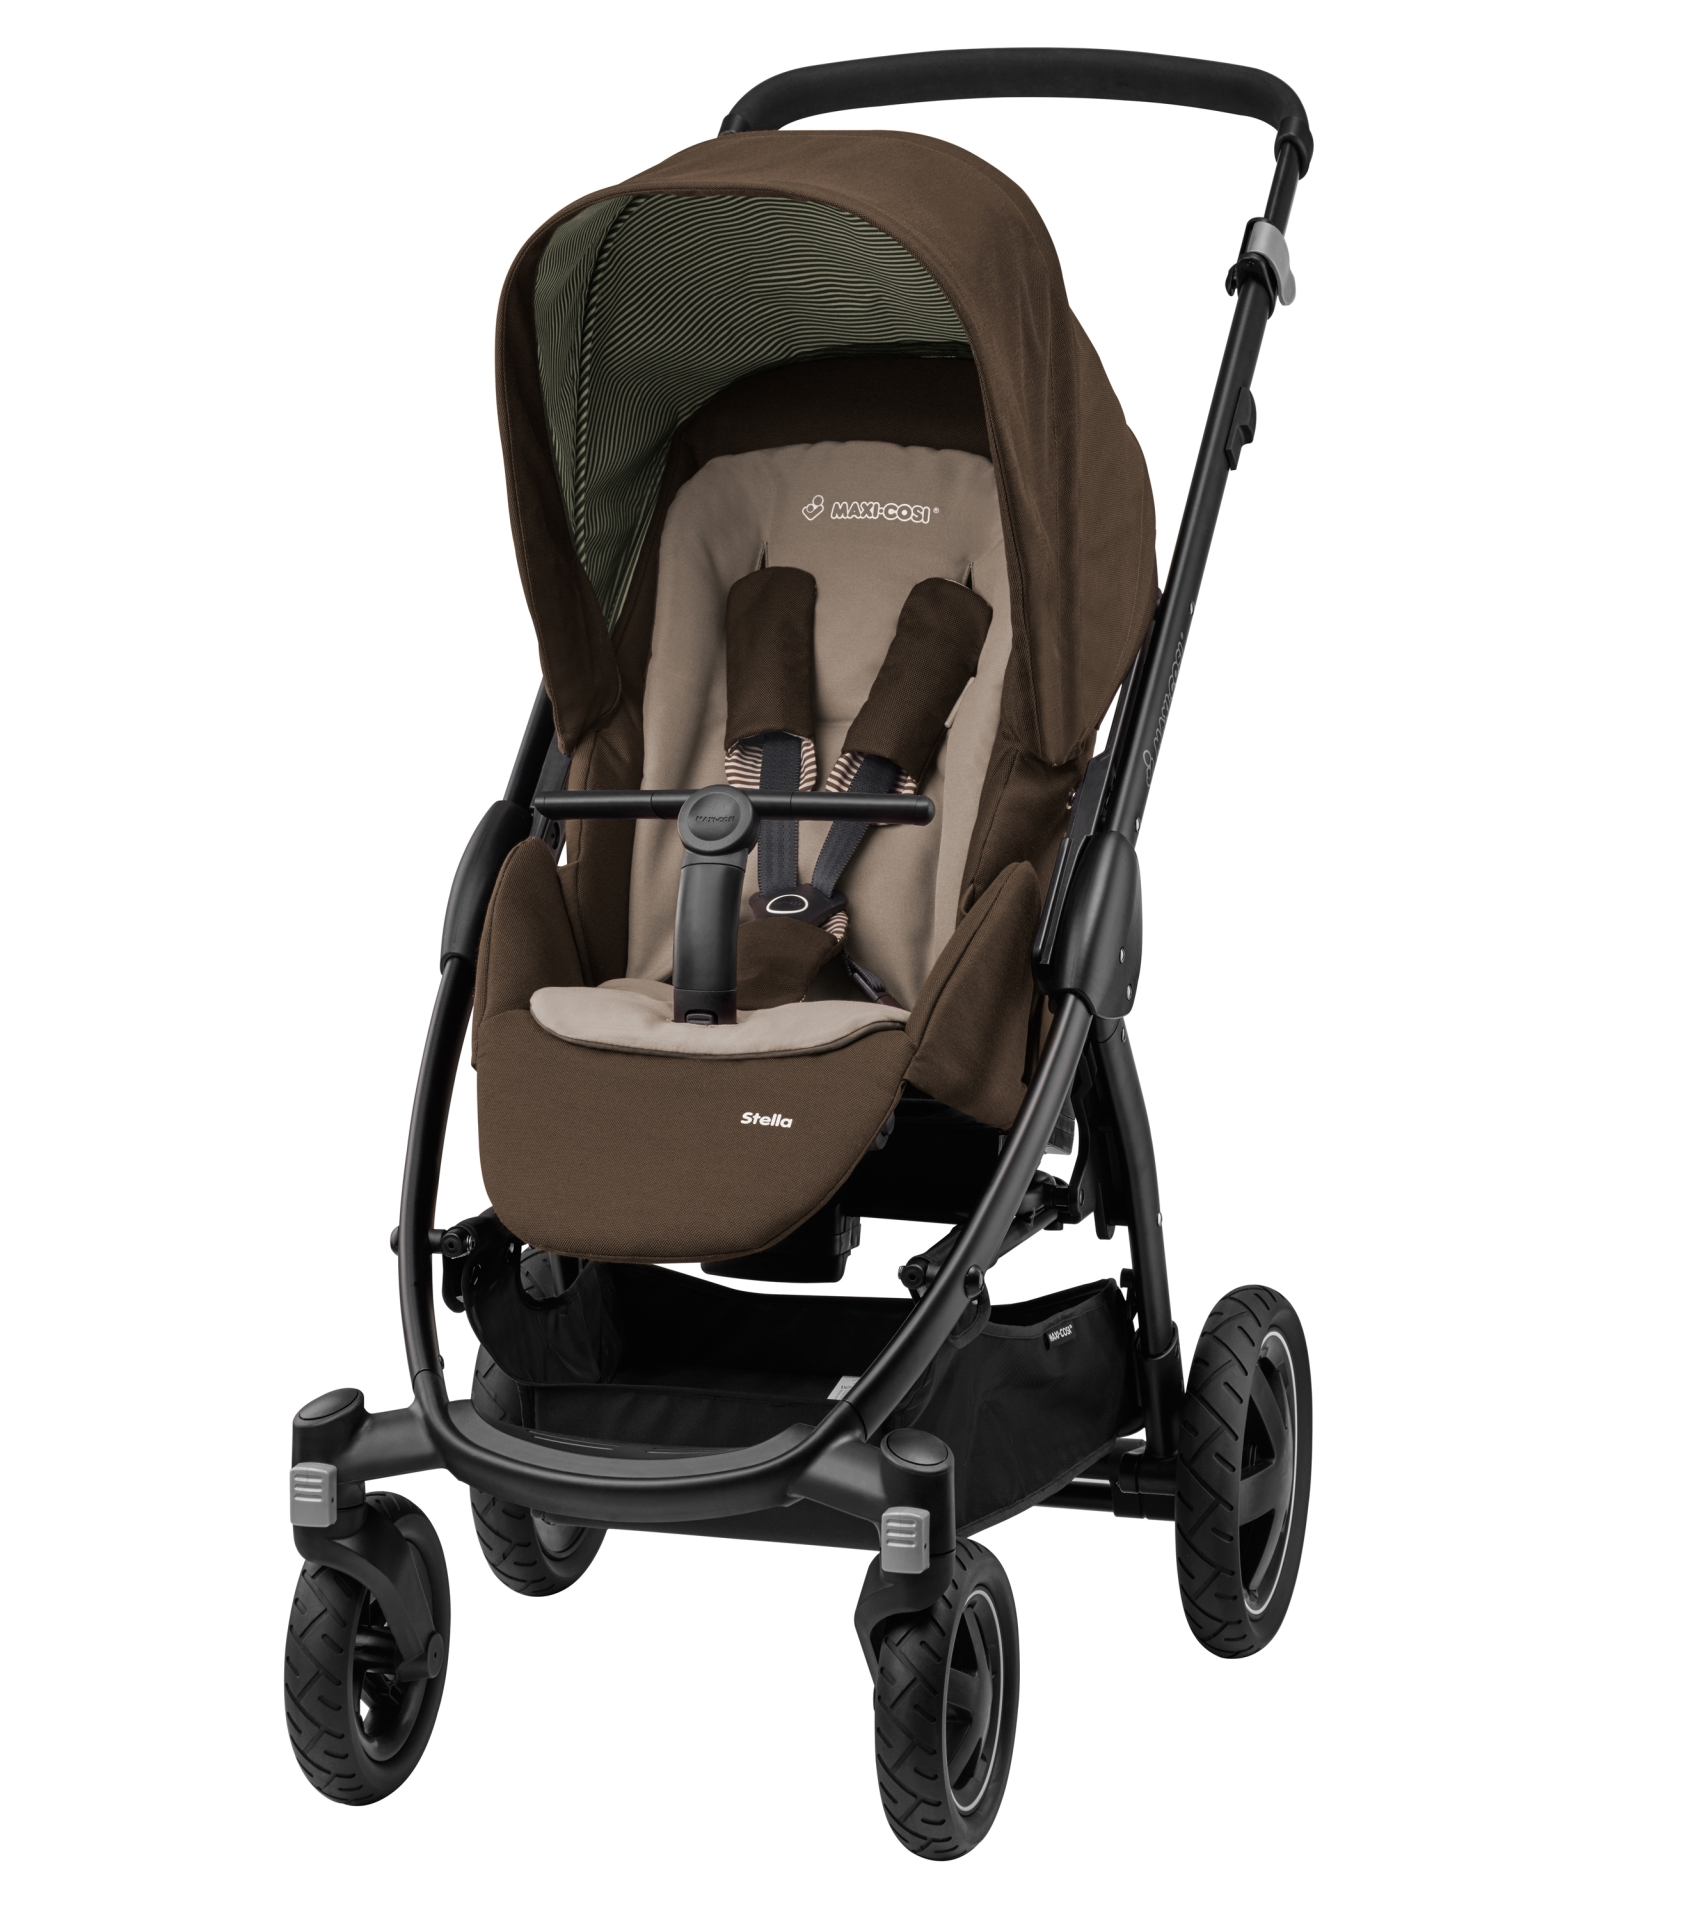 maxi cosi stroller stella 2017 earth brown buy at. Black Bedroom Furniture Sets. Home Design Ideas